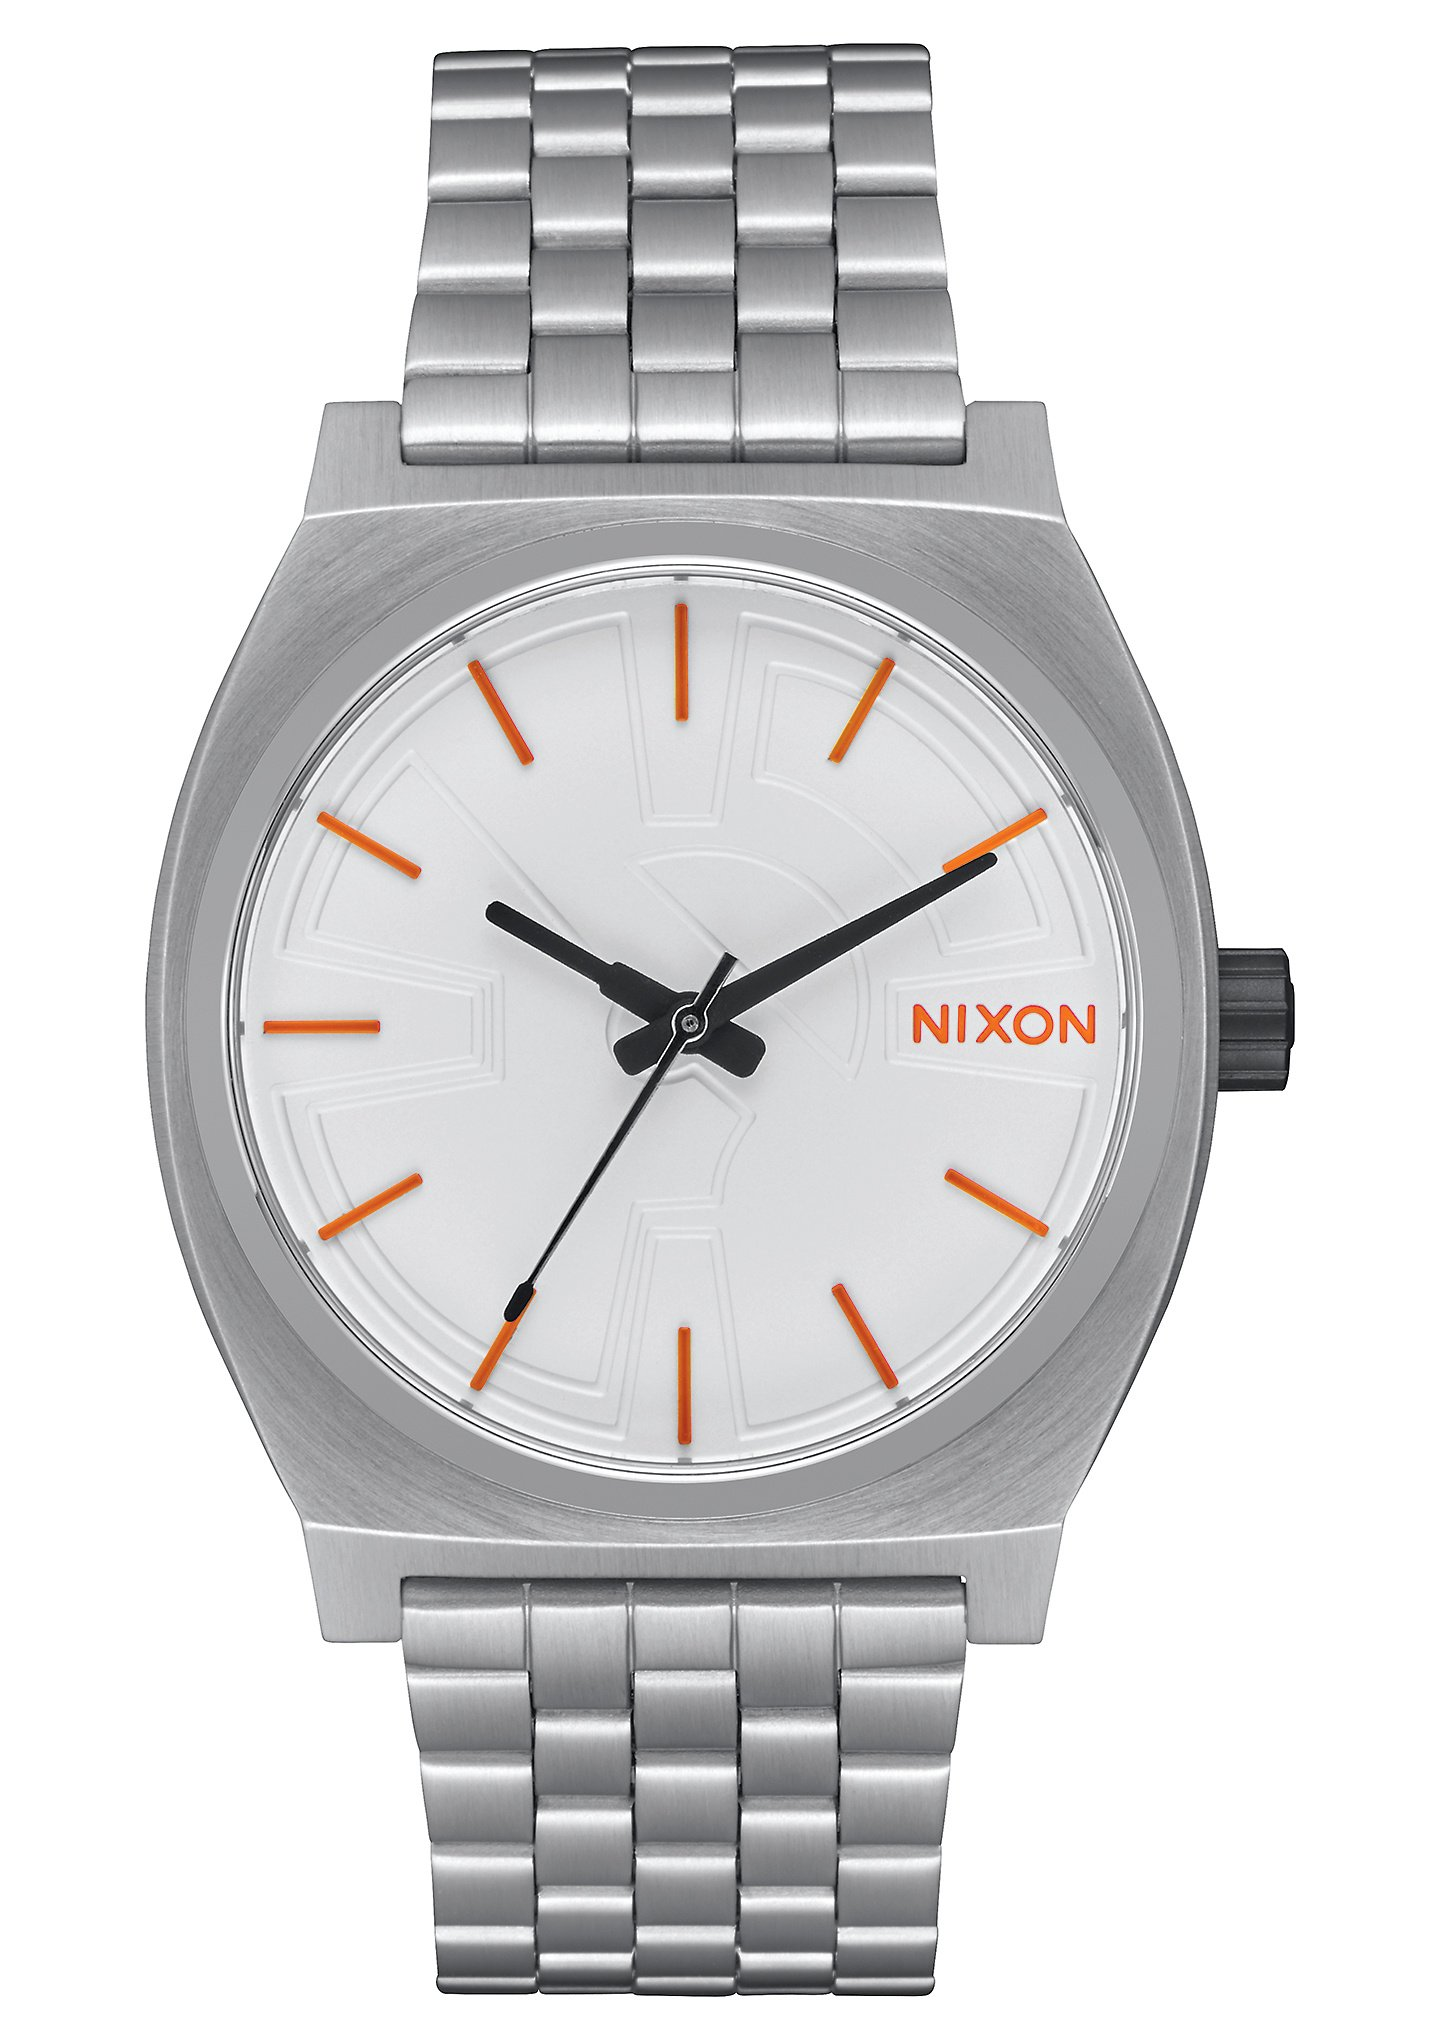 Nixon Unisex Time Teller - Star Wars Collection Bb-8 Silver/Orange Watch by NIXON